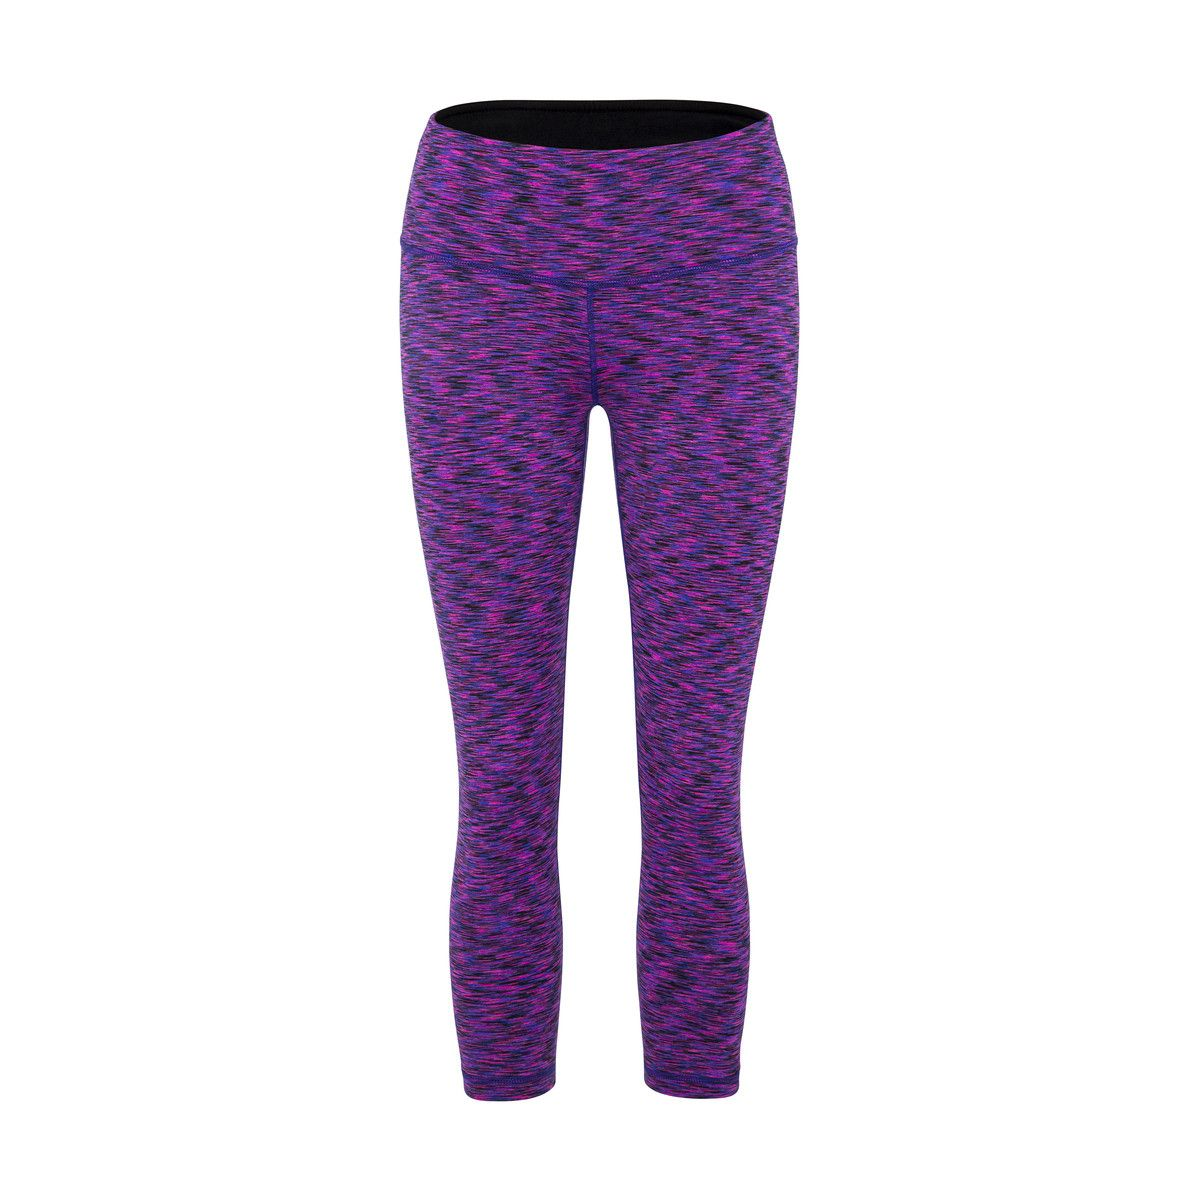 Active Spacedye 3 X2f 4 Leggings Kmart Clothes Leggings Sweatpants